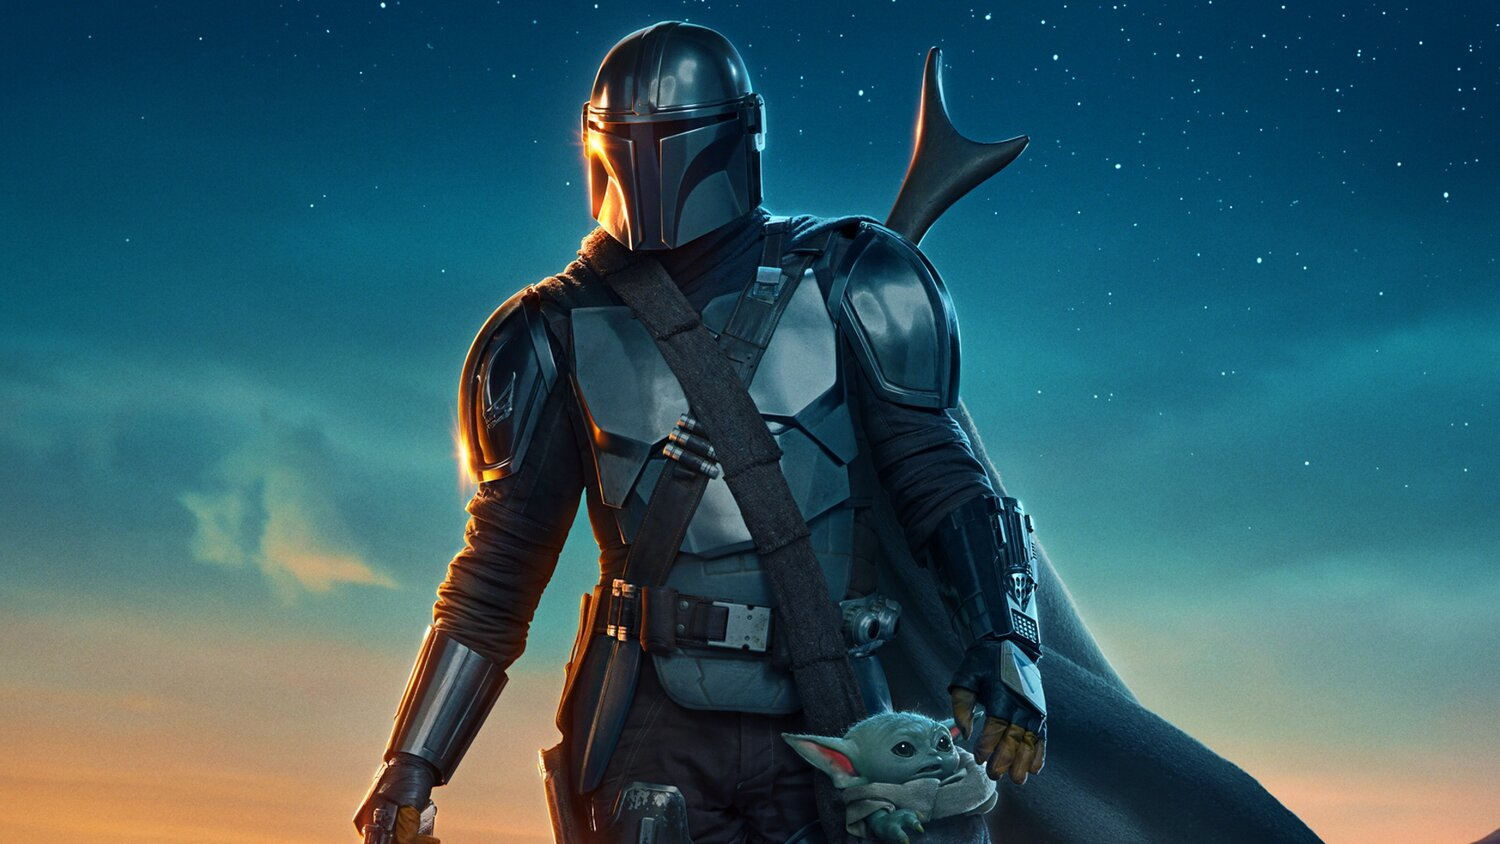 Cool Poster Art For Lucasfilm's THE MANDALORIAN